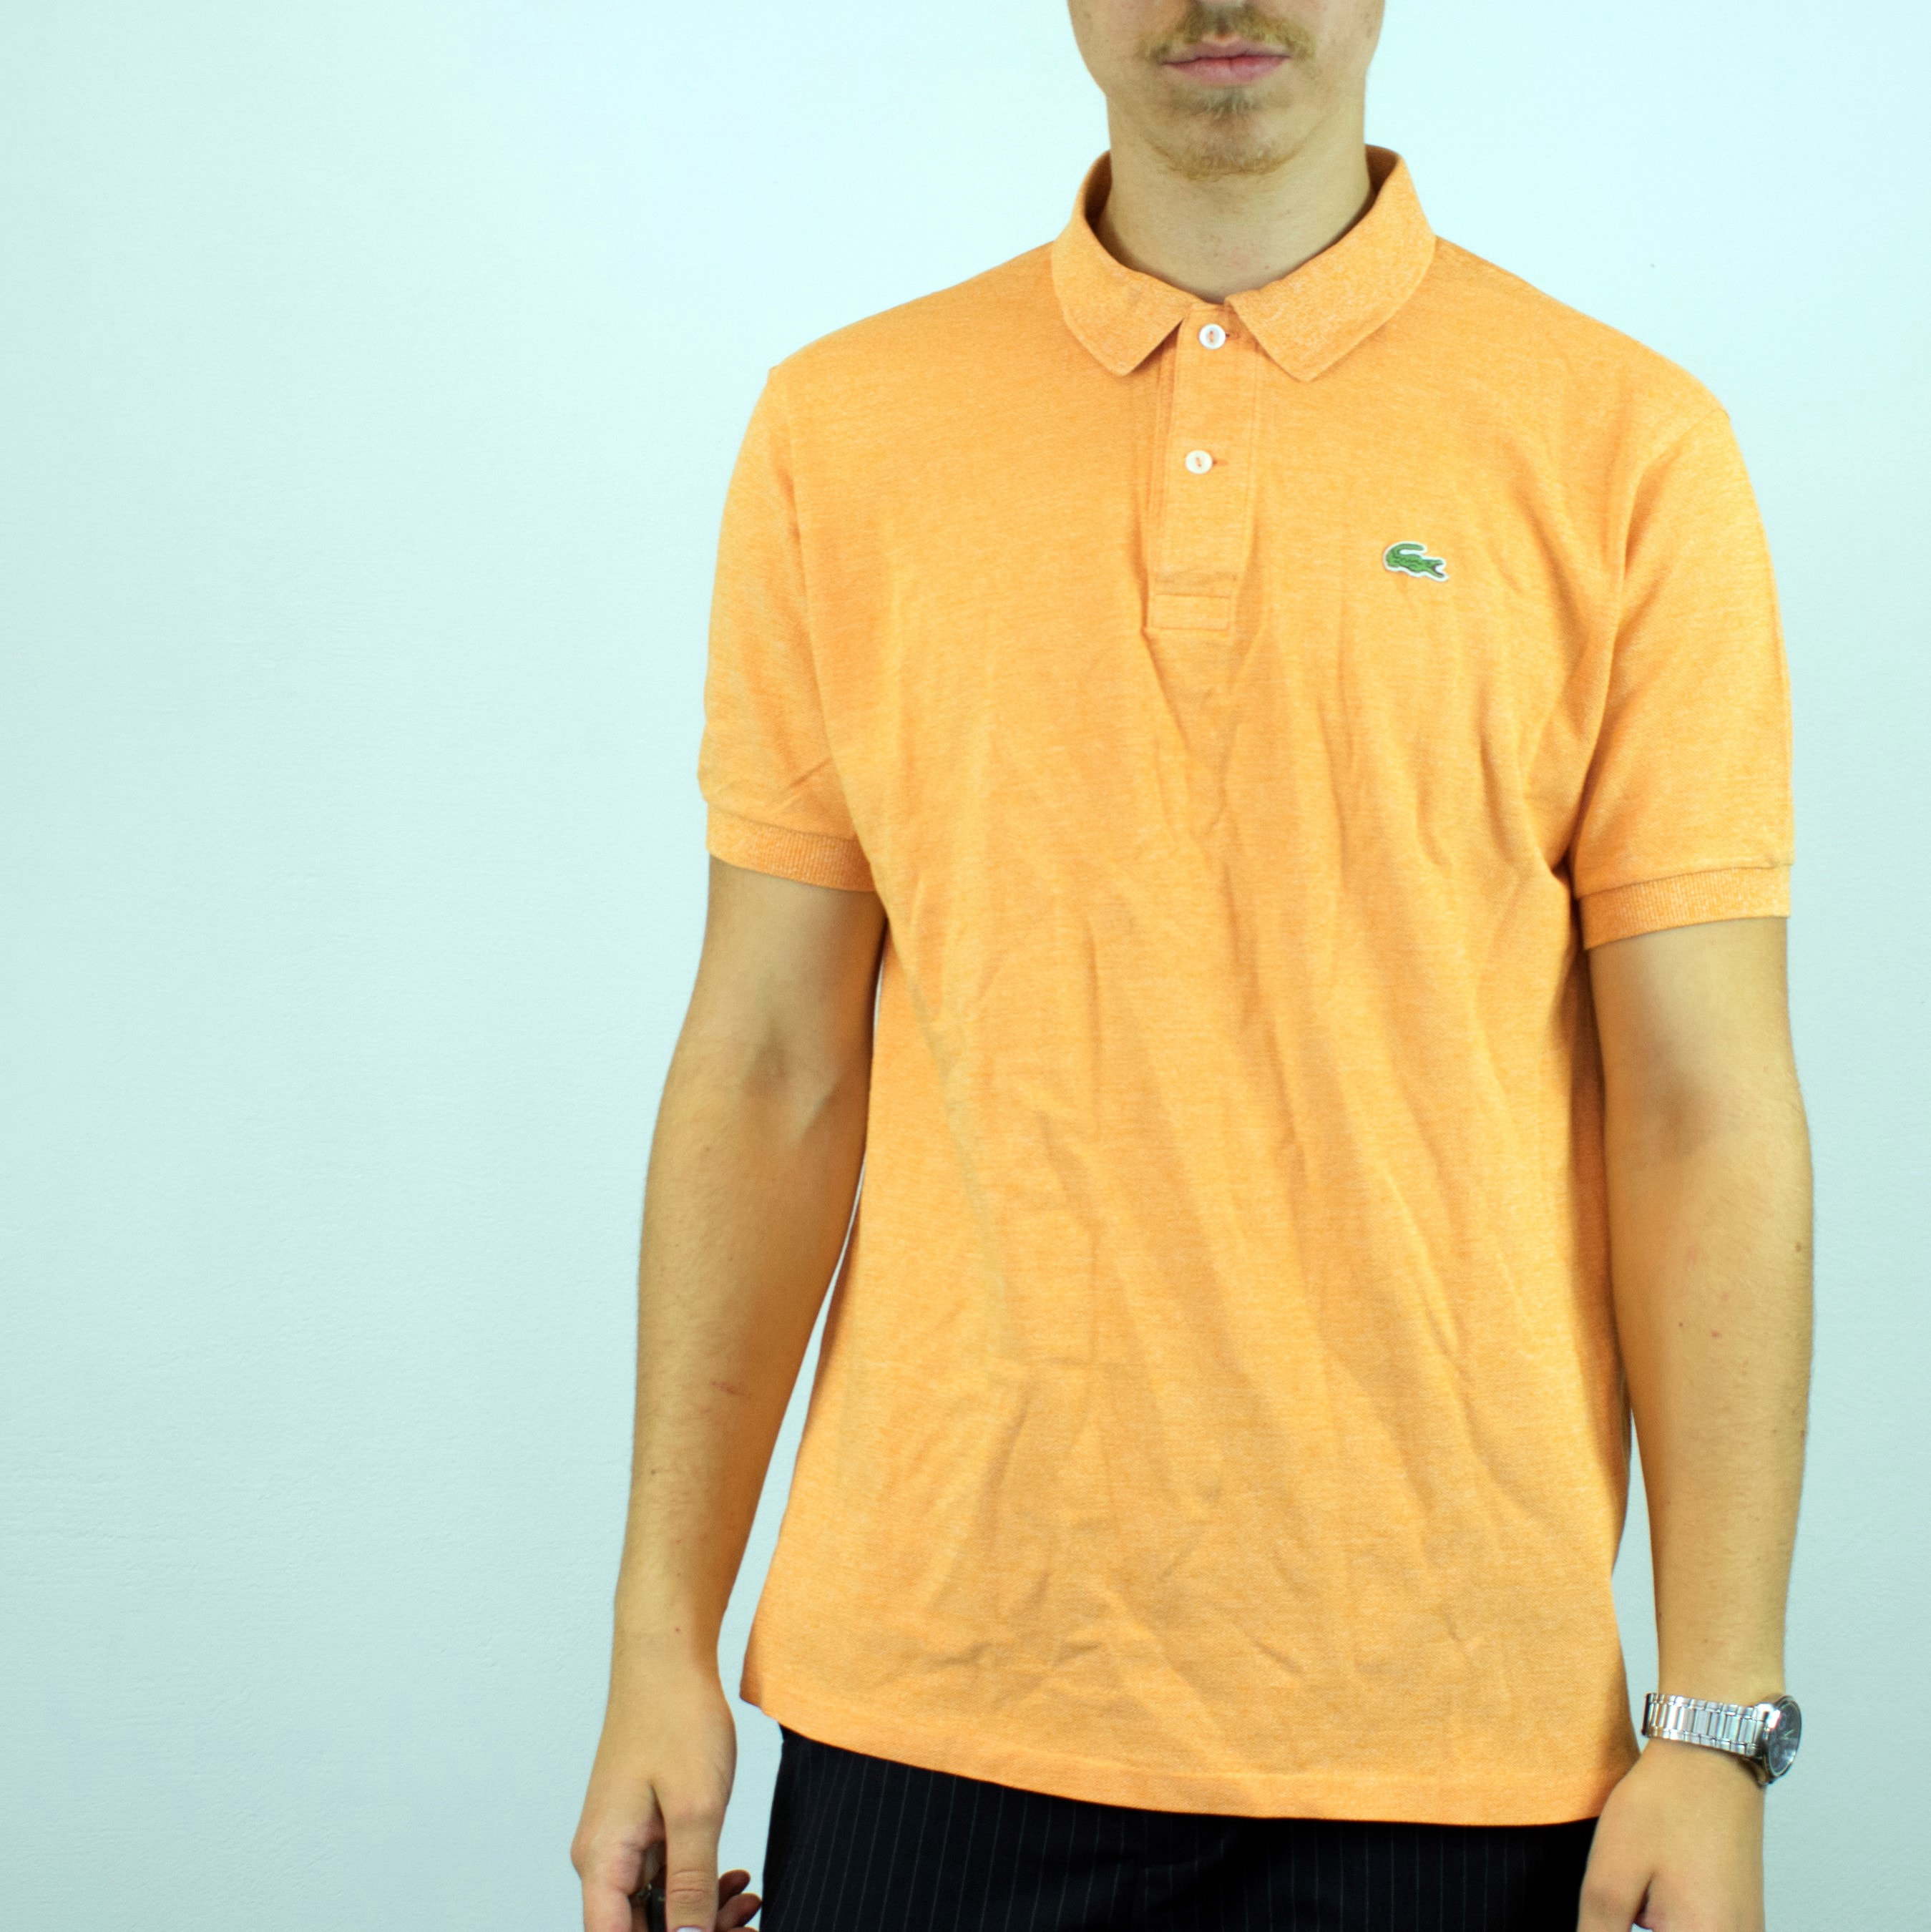 Unisex Vintage Lacoste polo shirt in orange has a small logo on the front size L